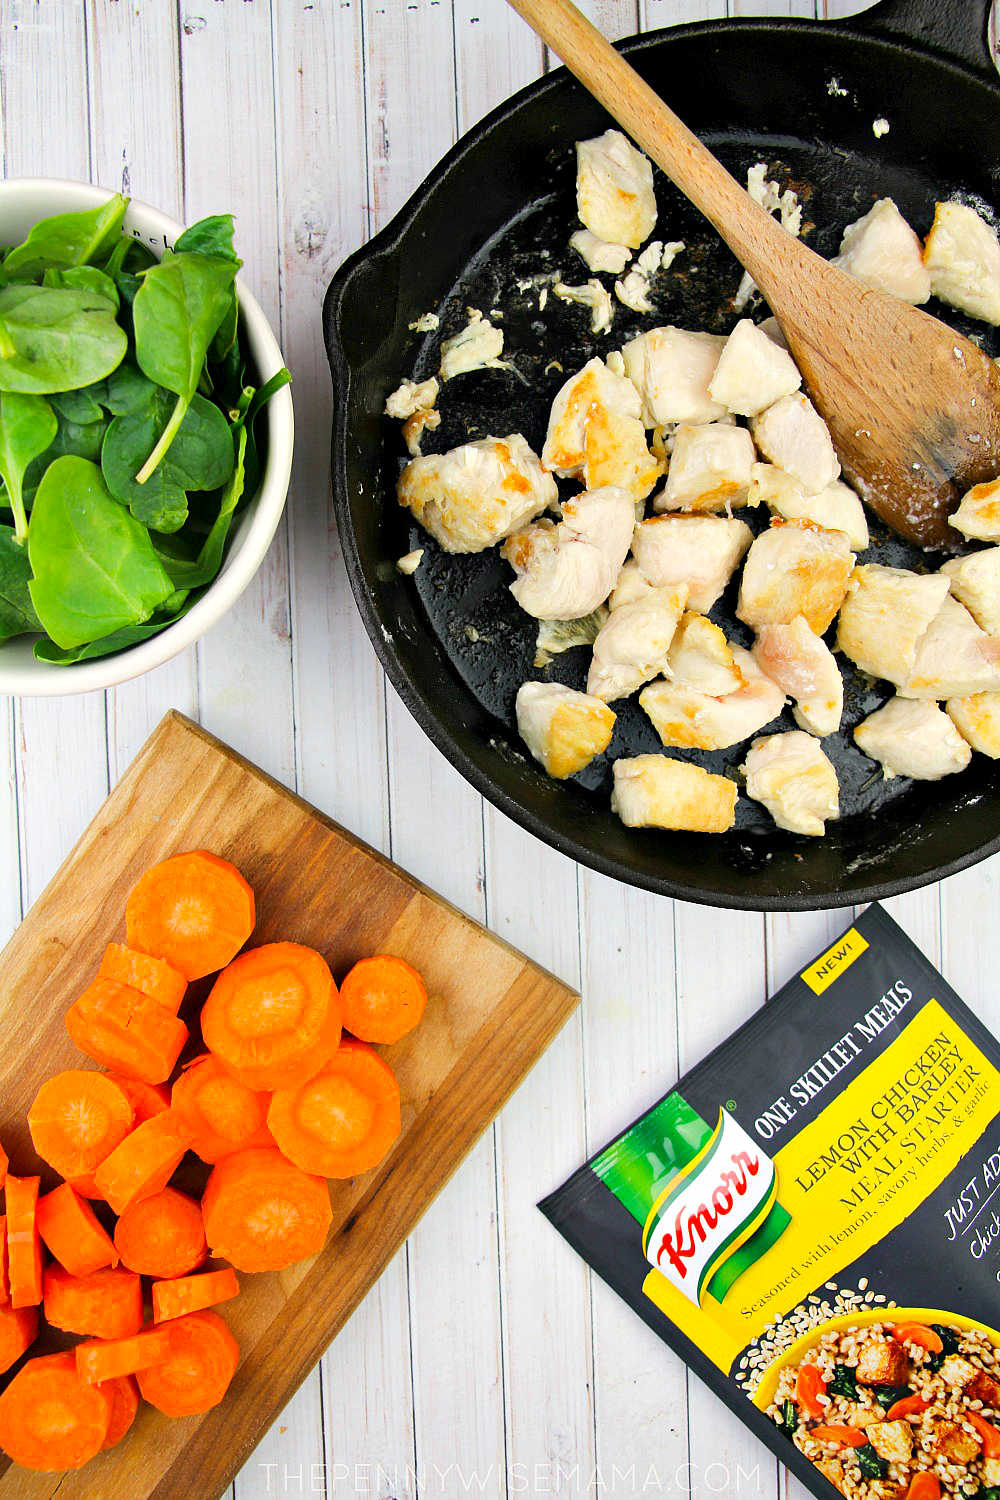 Knorr One Skillet Meals - Lemon Chicken with Barley